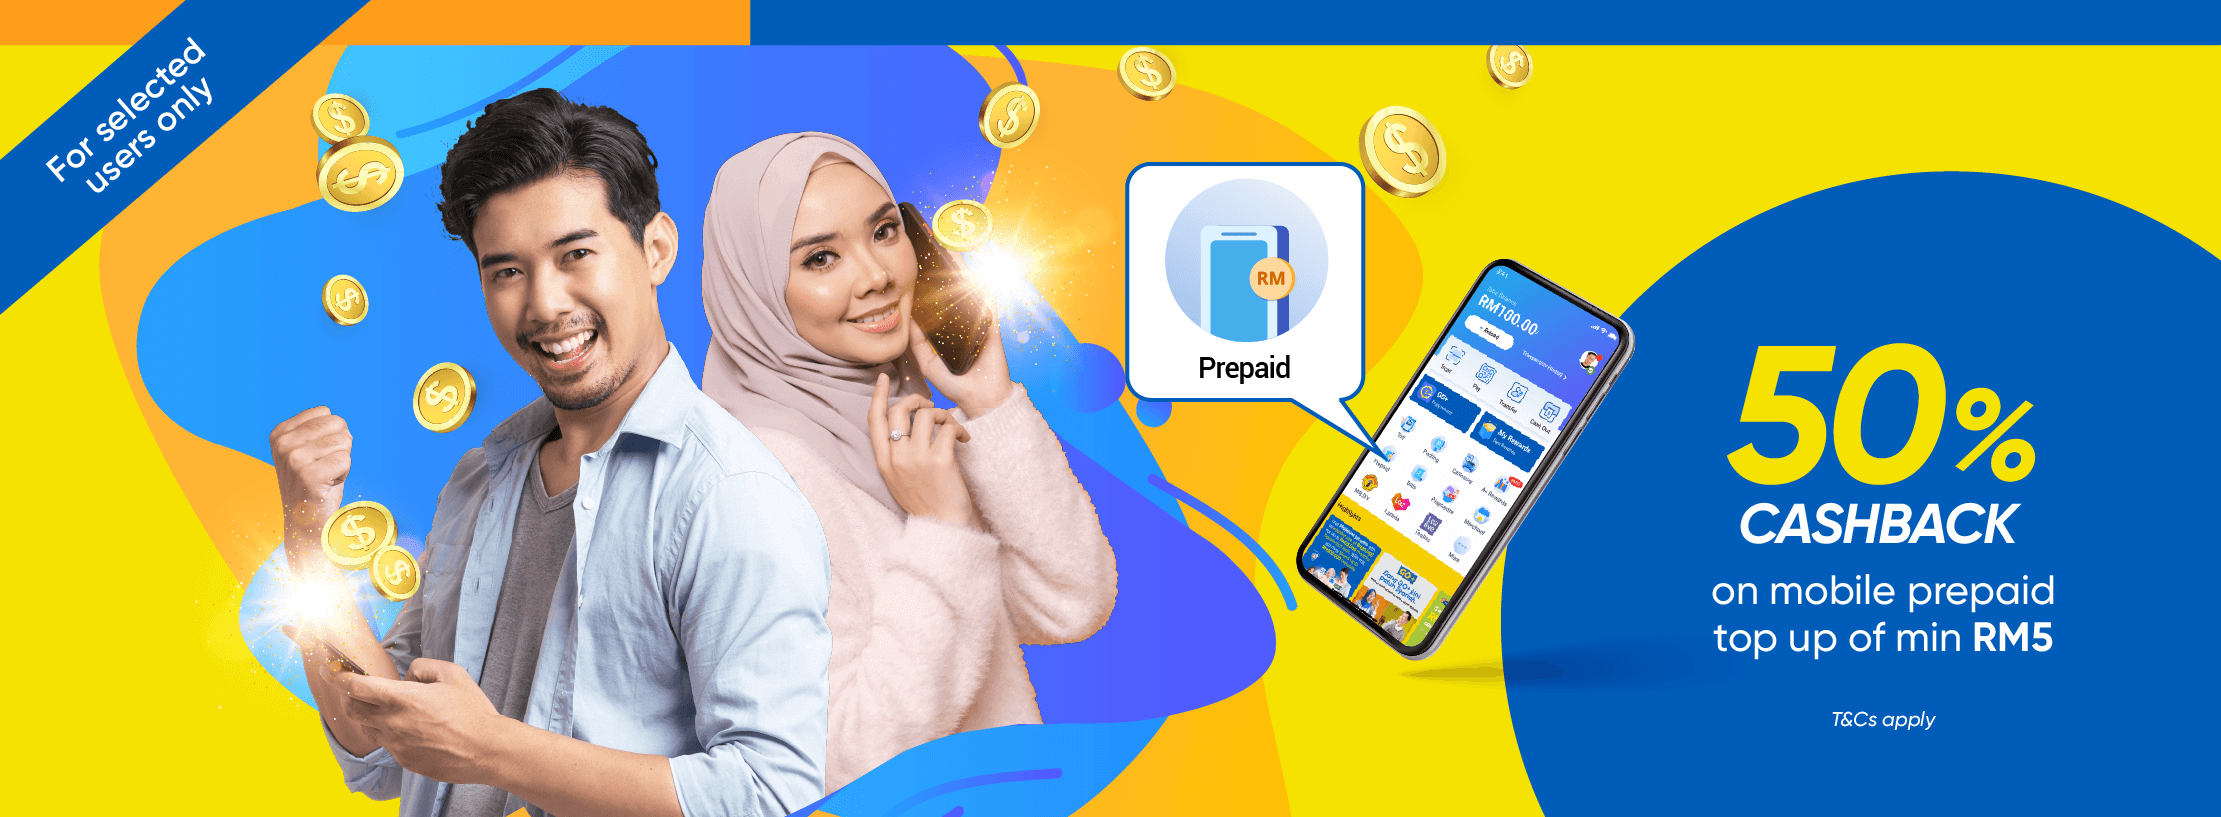 Mobile Prepaid 50% Cashback Special